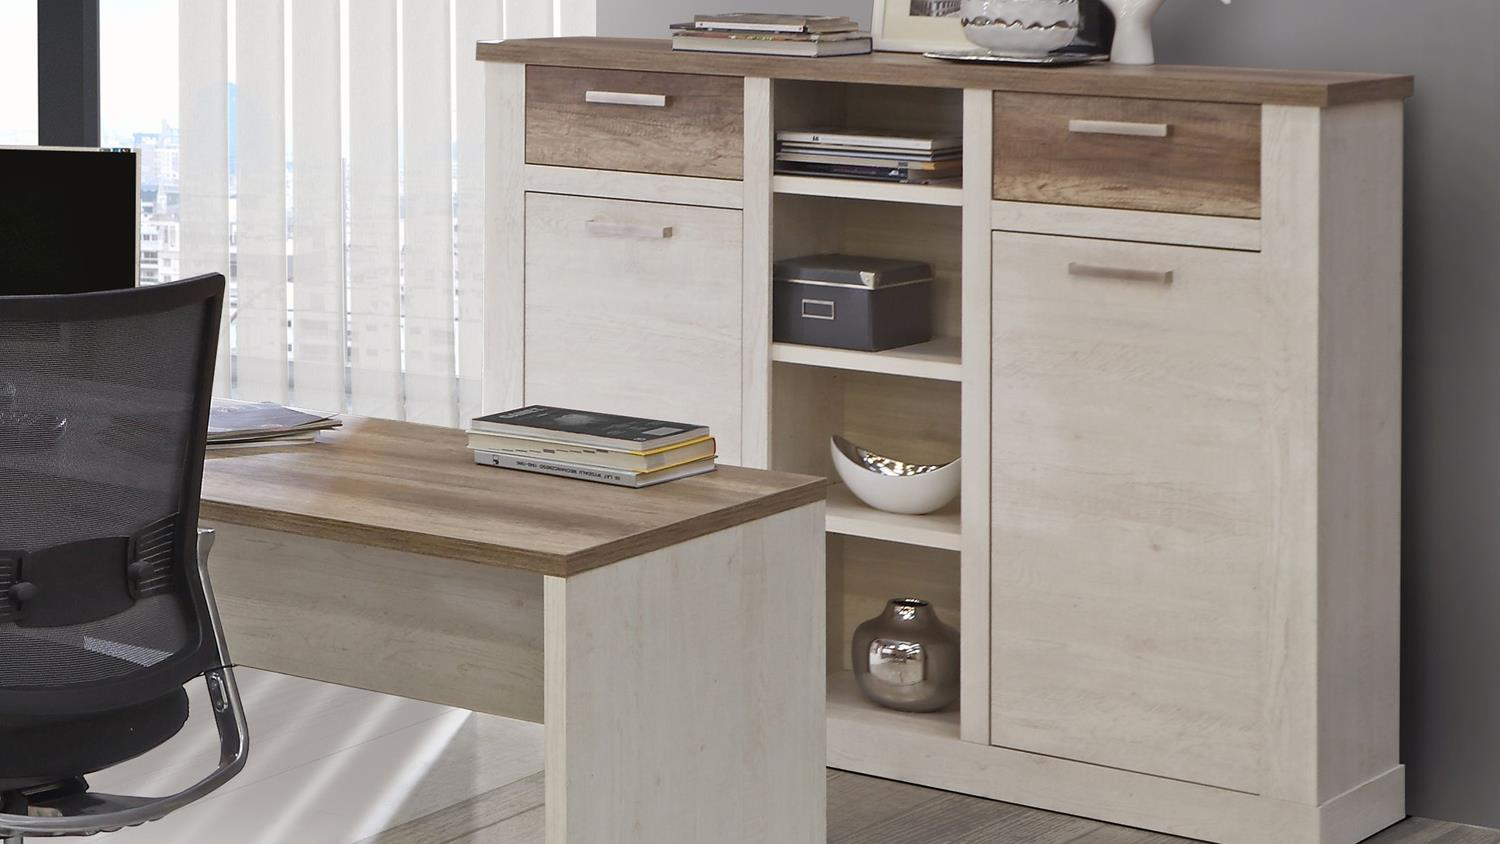 arbeitszimmer duro b ro set home office in pinie wei und eiche antik. Black Bedroom Furniture Sets. Home Design Ideas